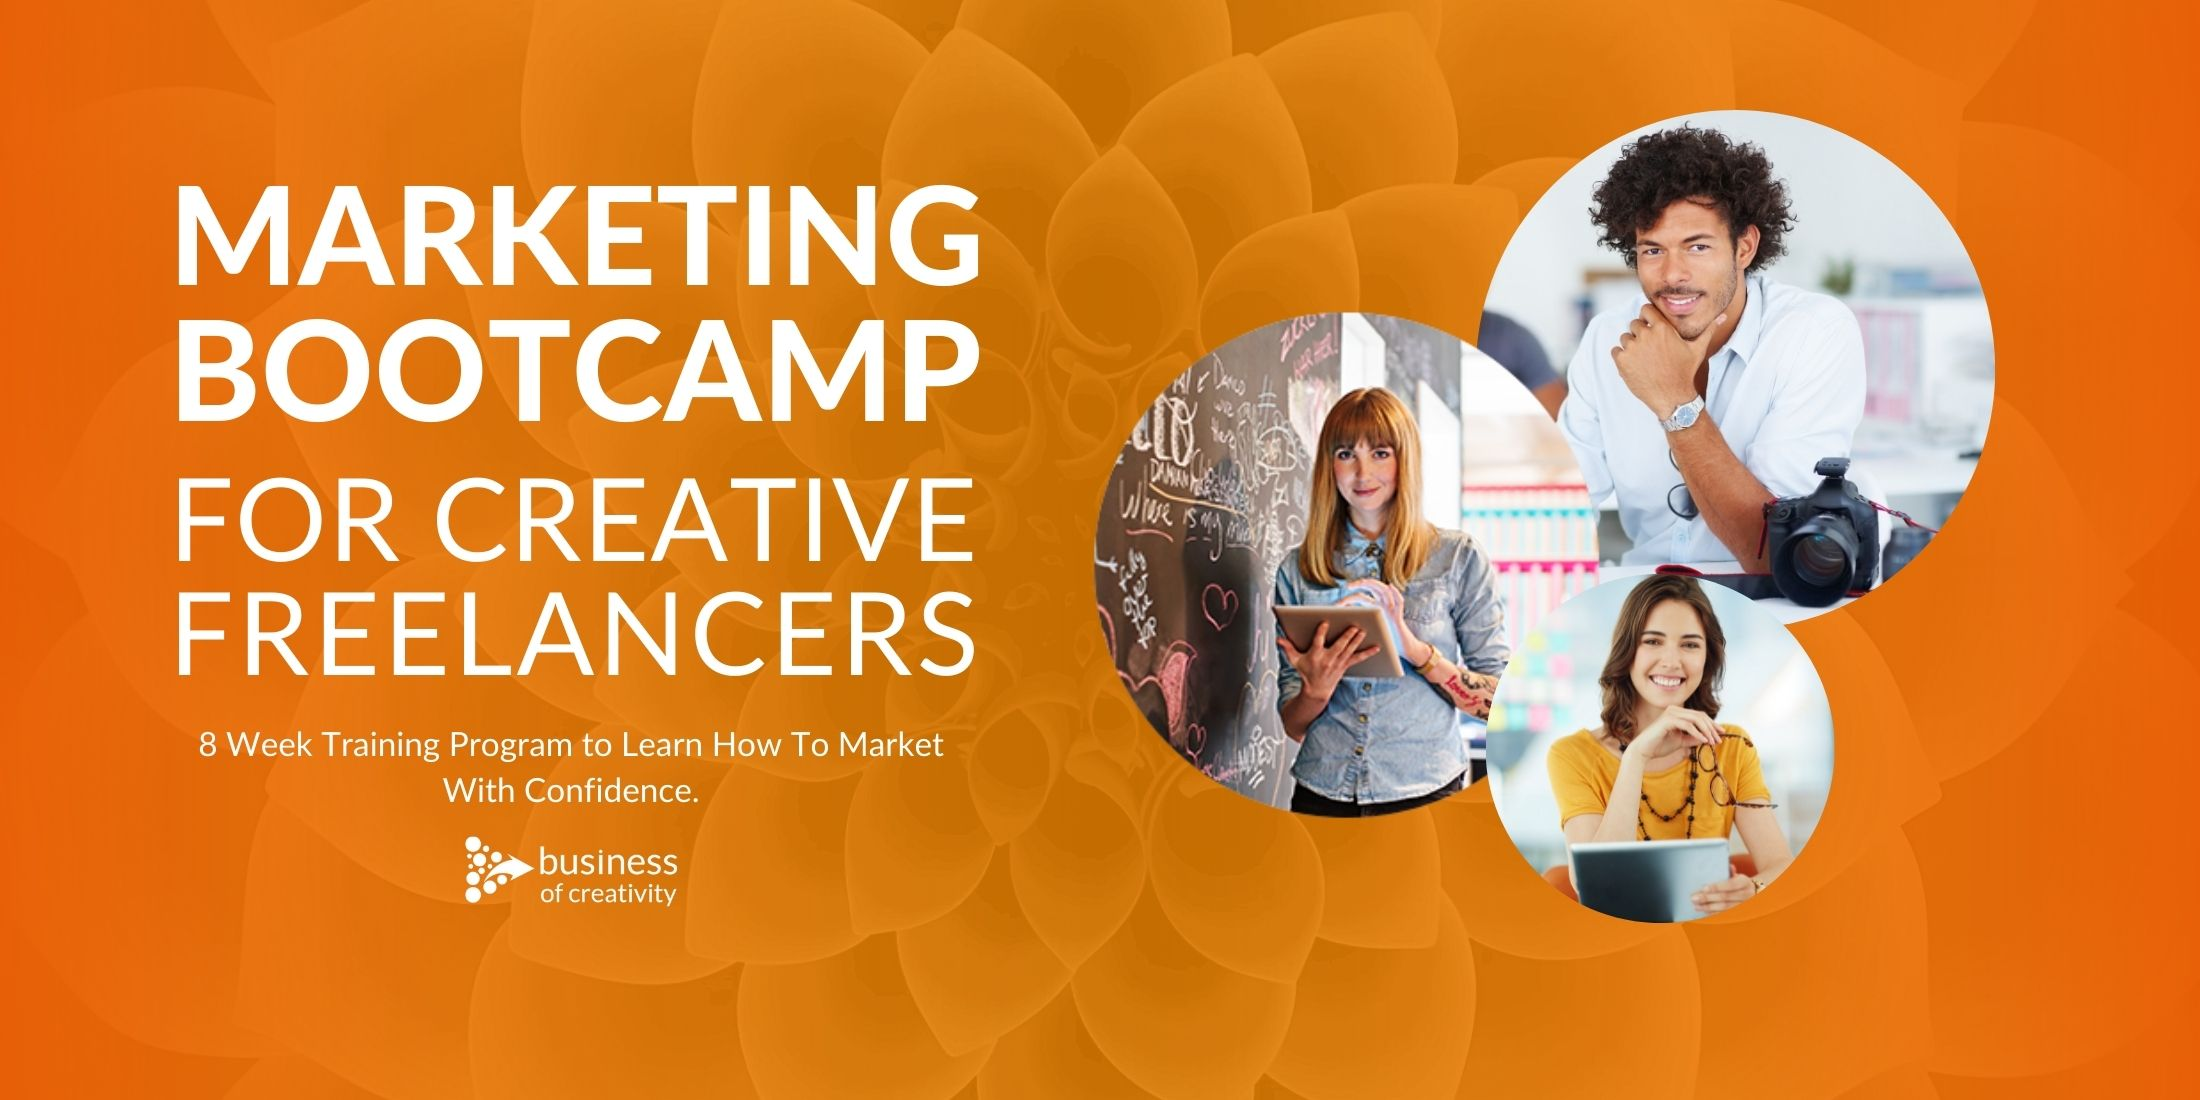 Marketing Bootcamp For Creative Freelancers Banner